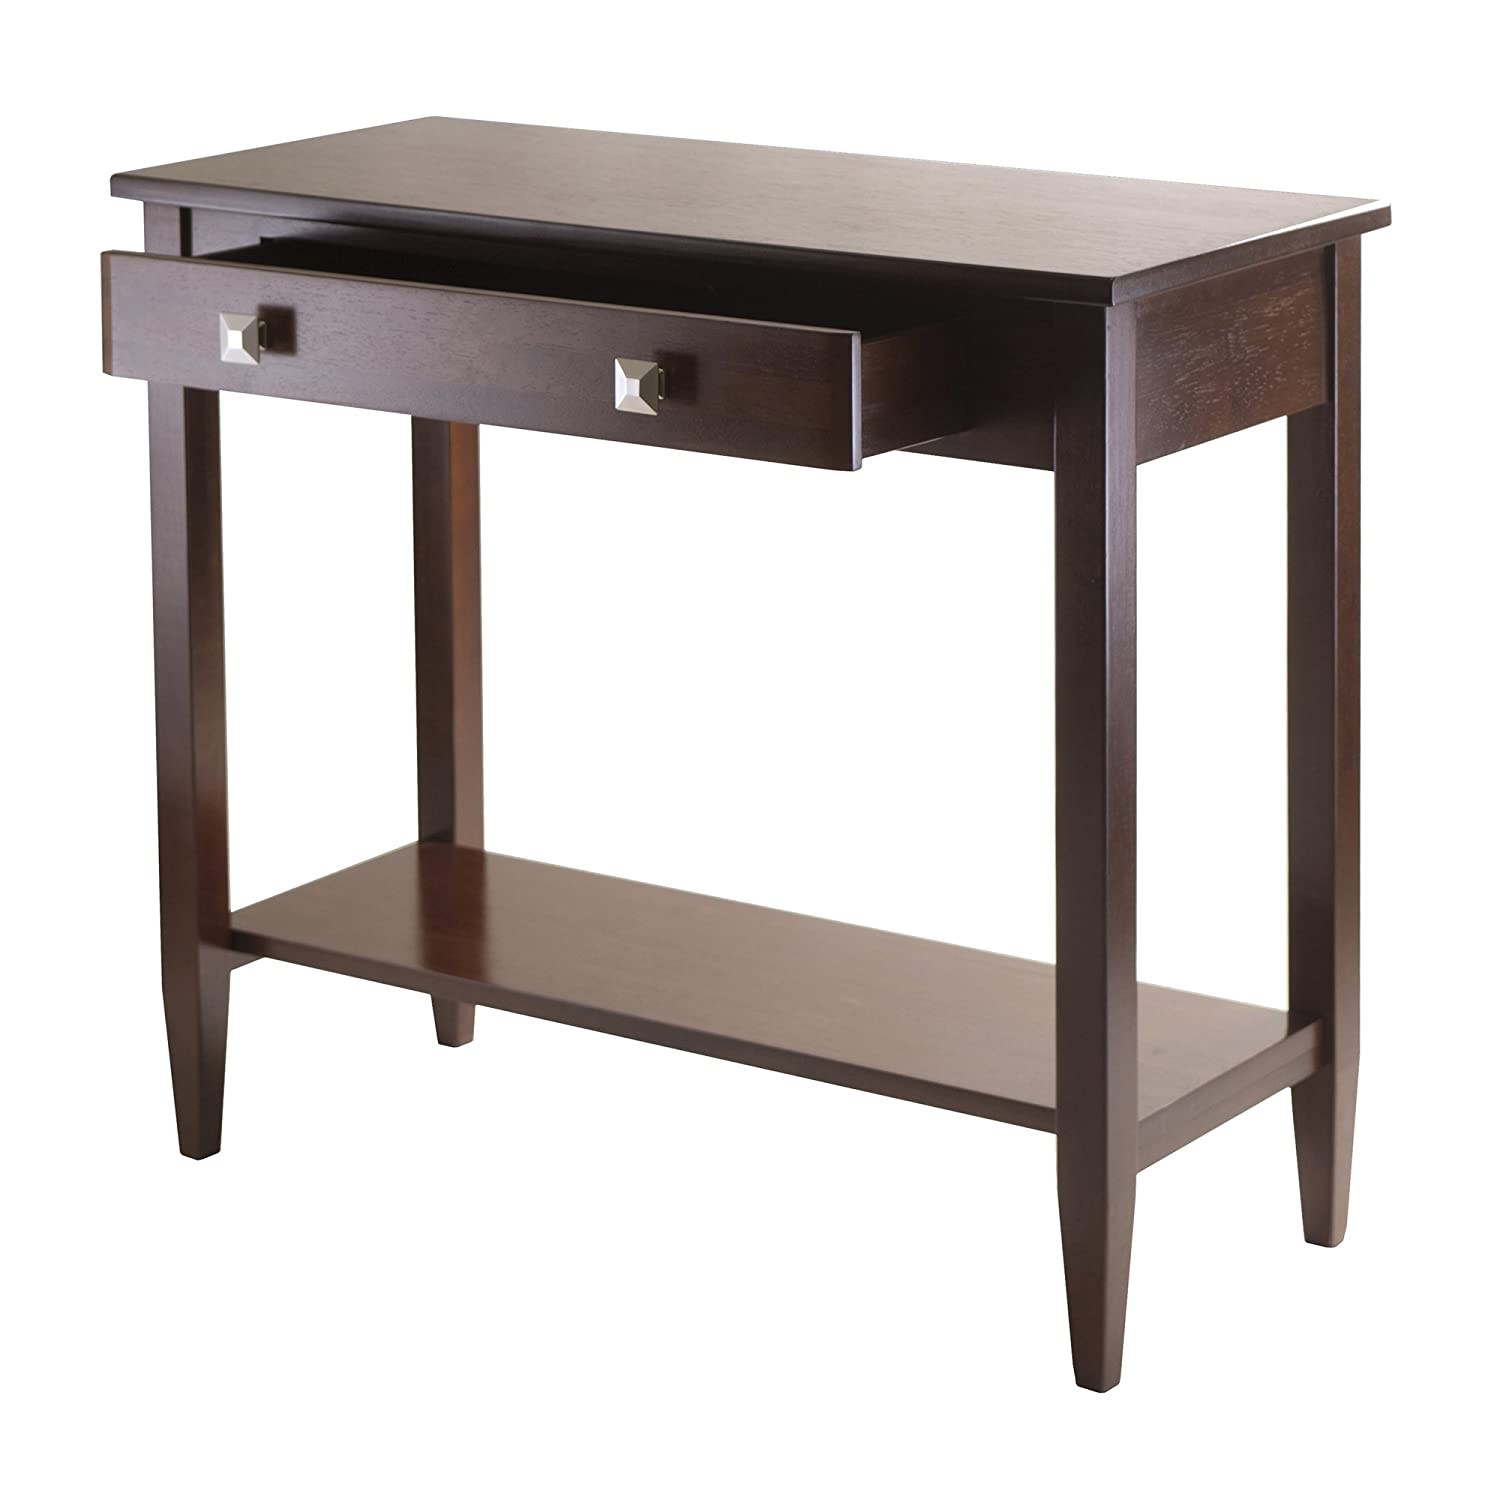 choose kids ikea furniture winsome. Amazon.com: Winsome Richmond Console Hall Table With Tapered Leg: Kitchen \u0026 Dining Choose Kids Ikea Furniture